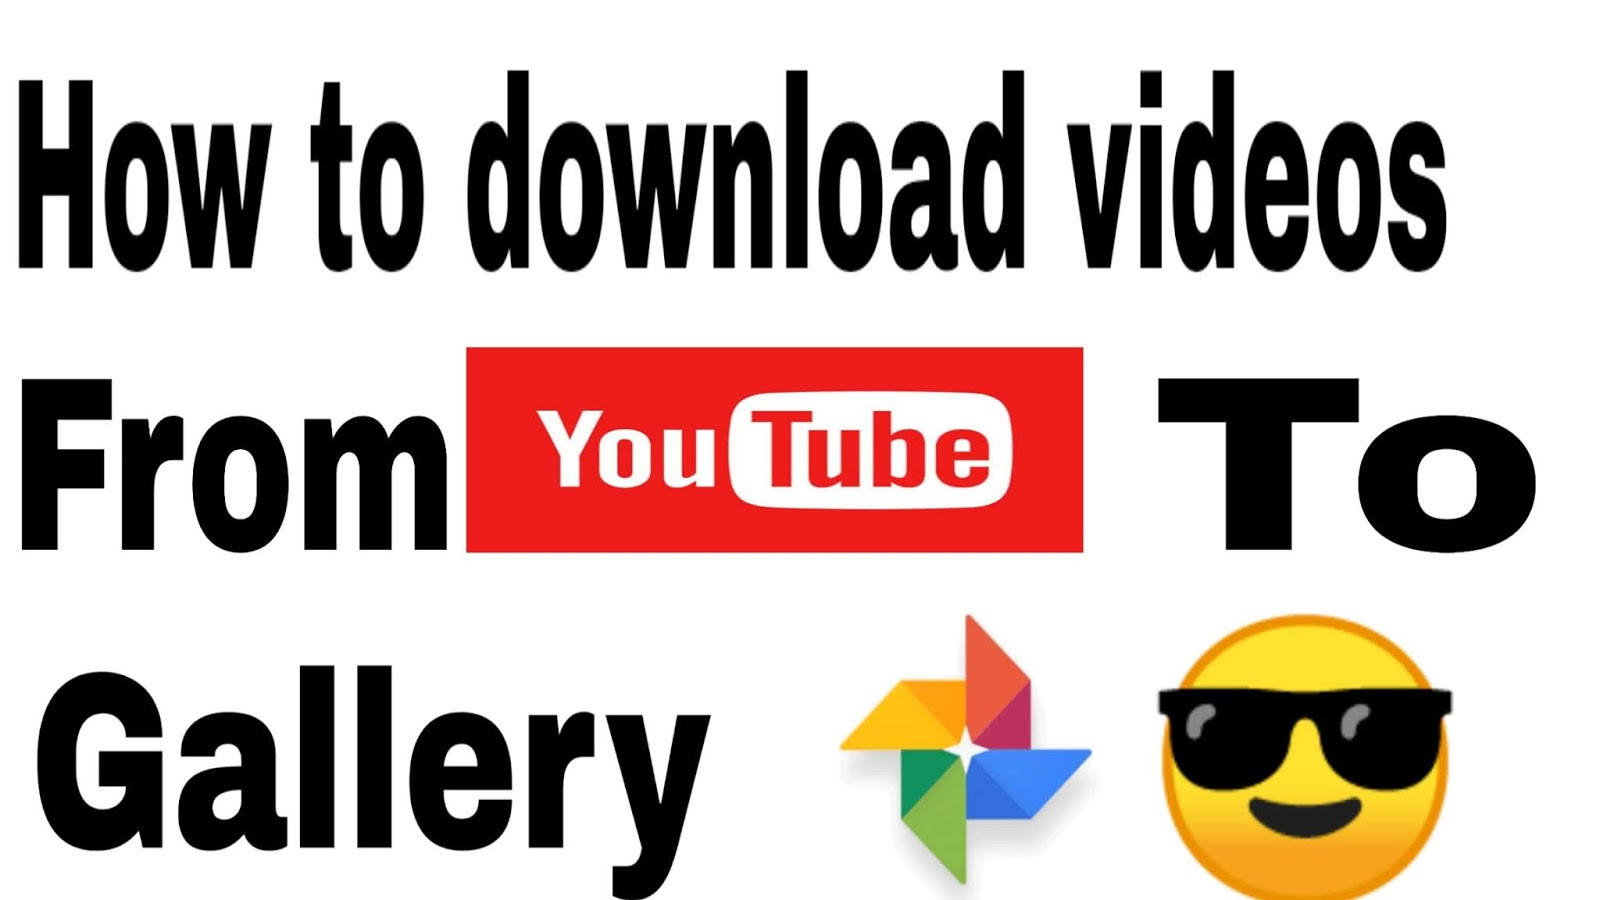 how to download videos from youtube to gallery